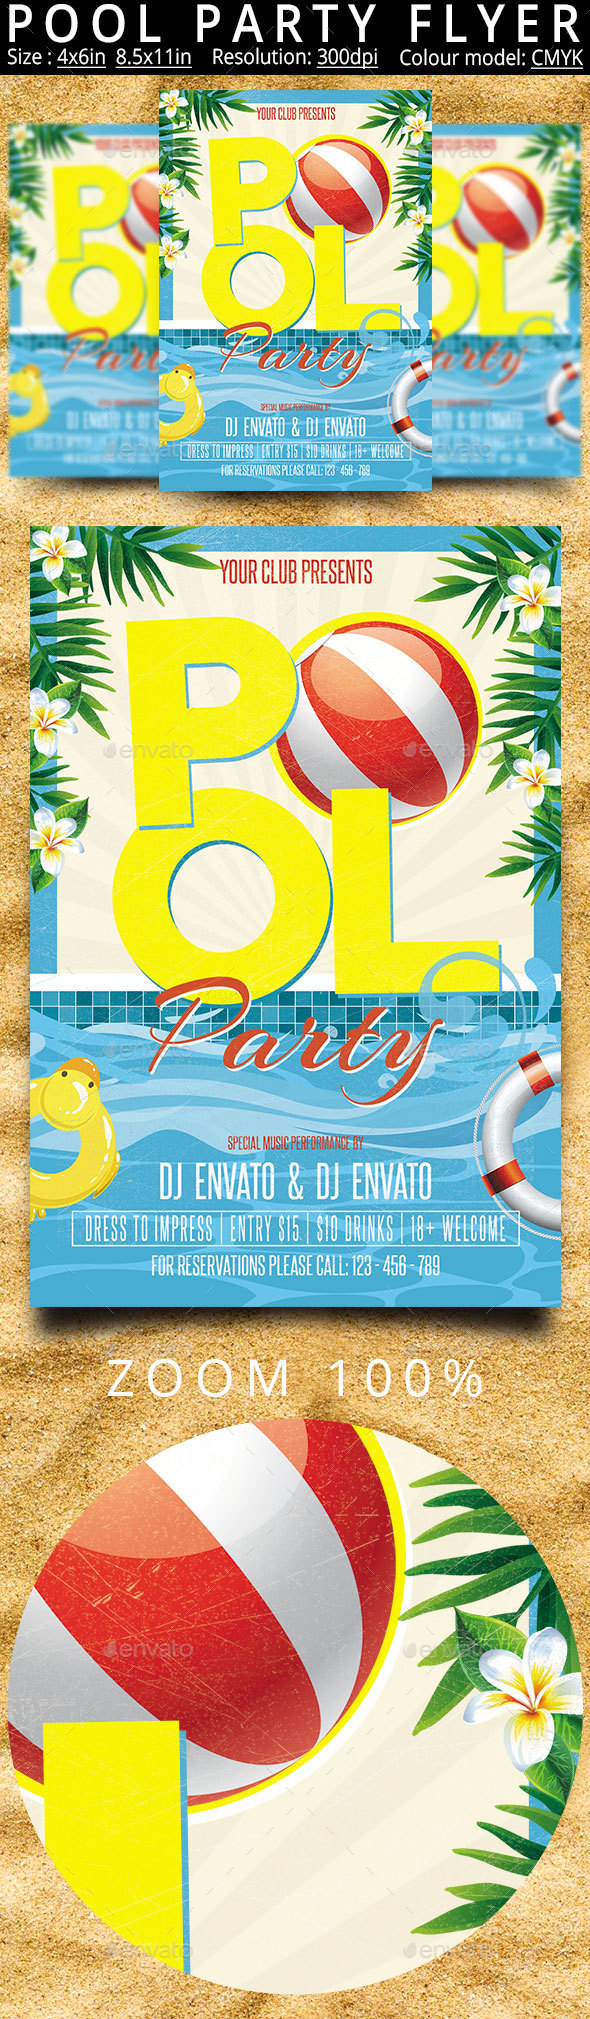 Pool Party Flyer Poster - Clubs & Parties Events